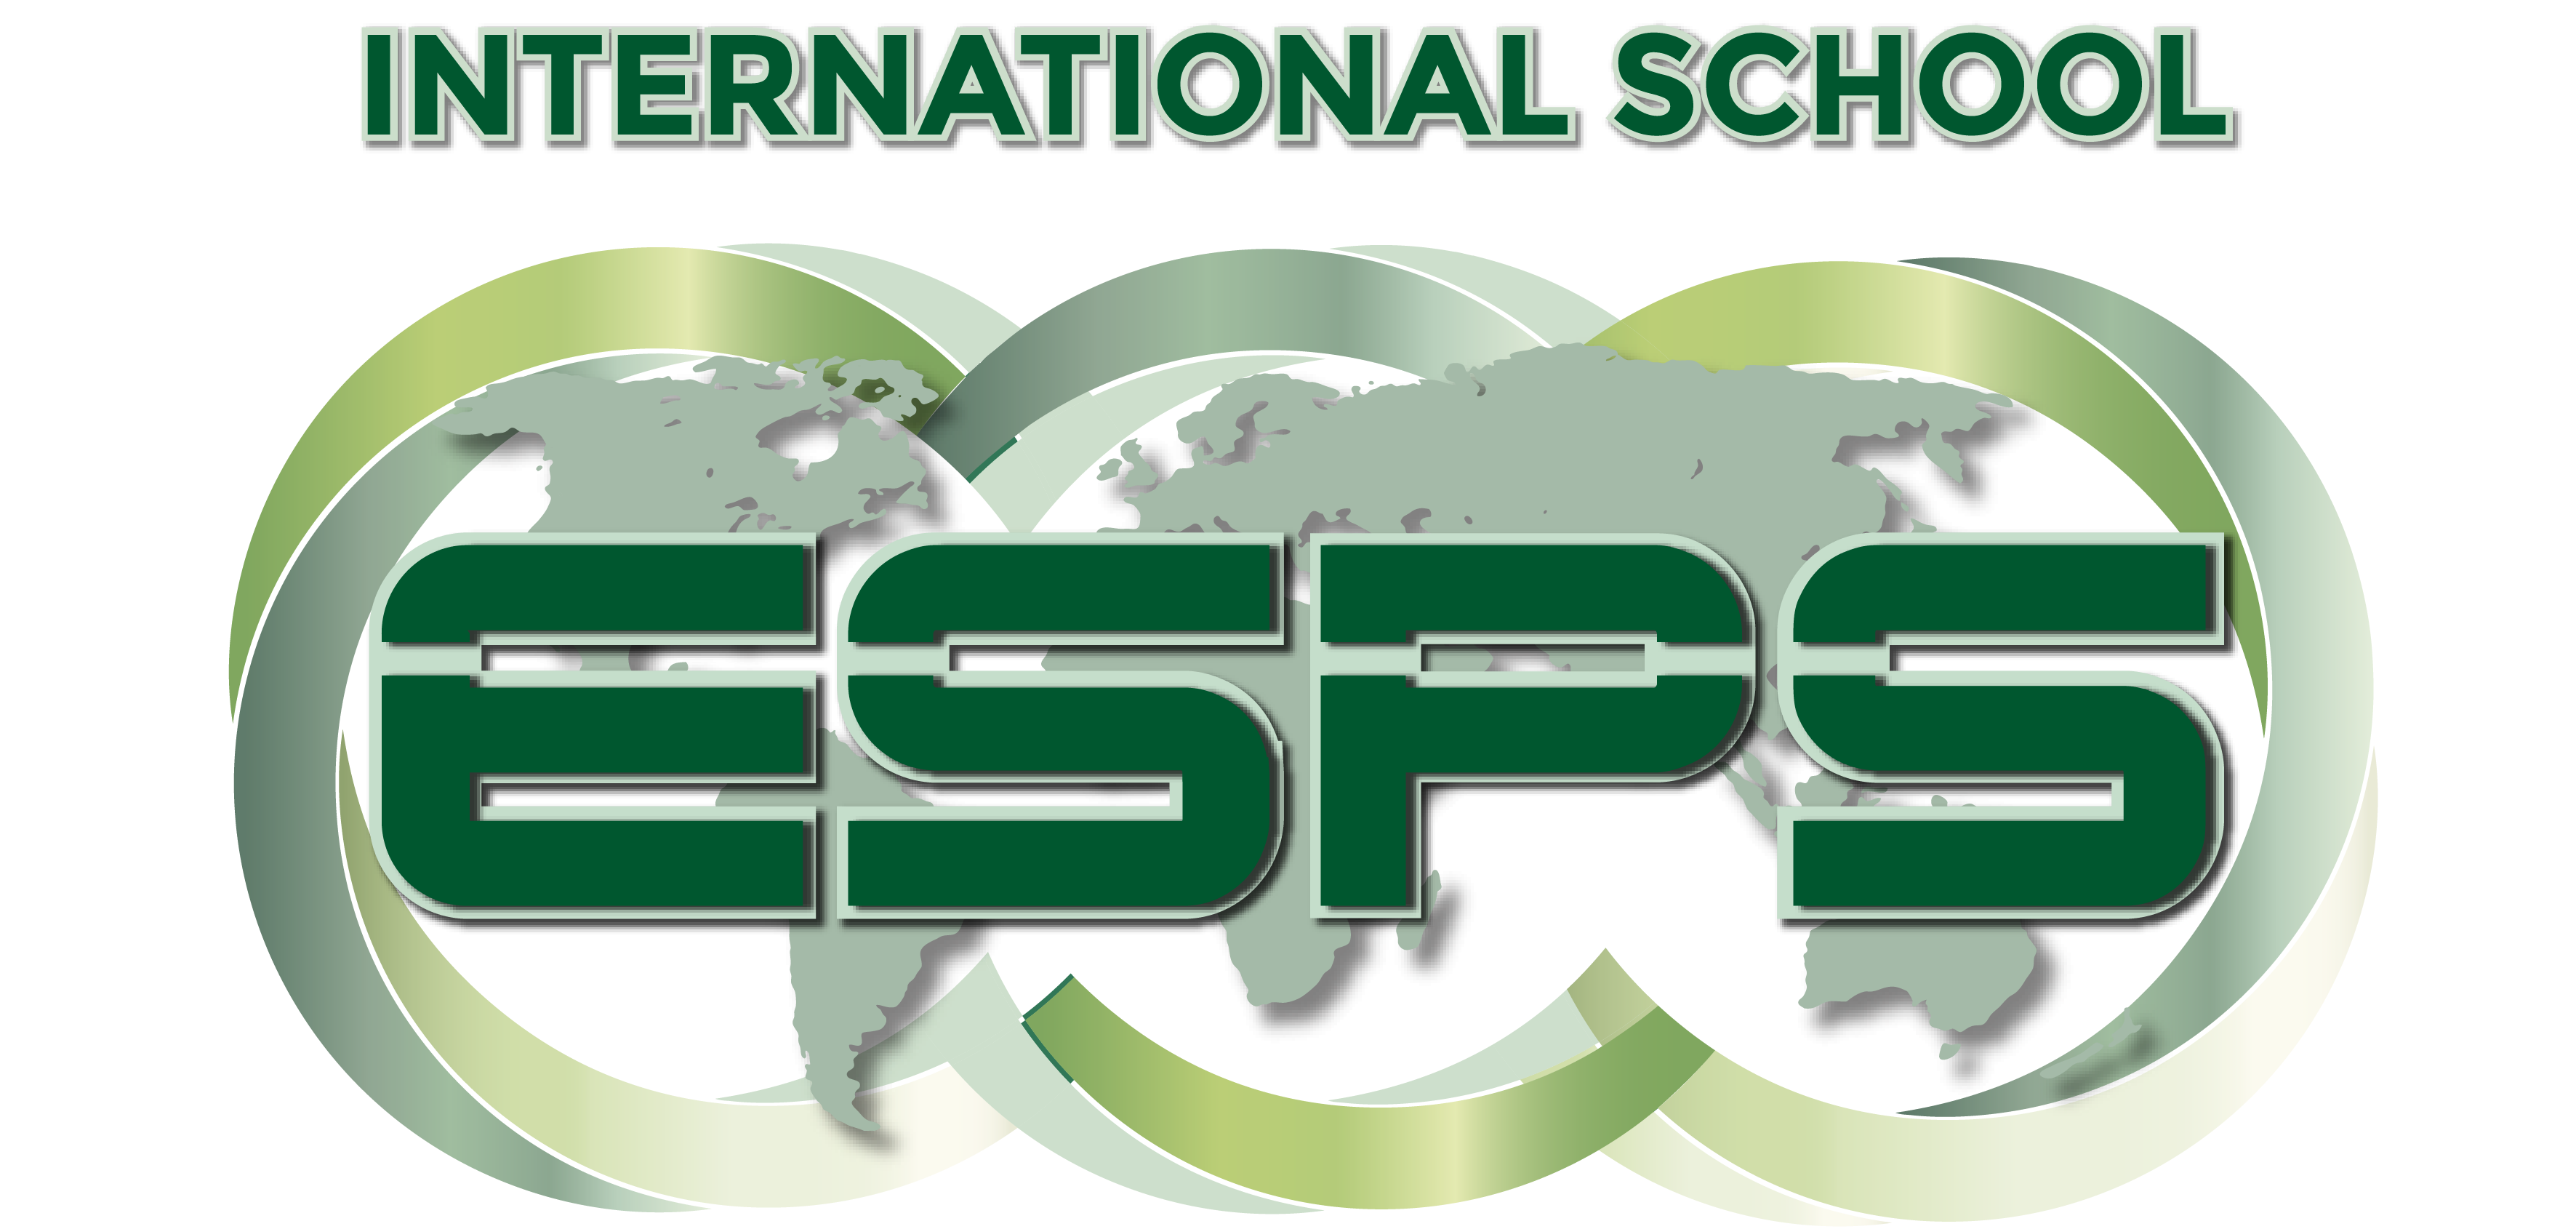 ESPS International School. Are you ready to learn?